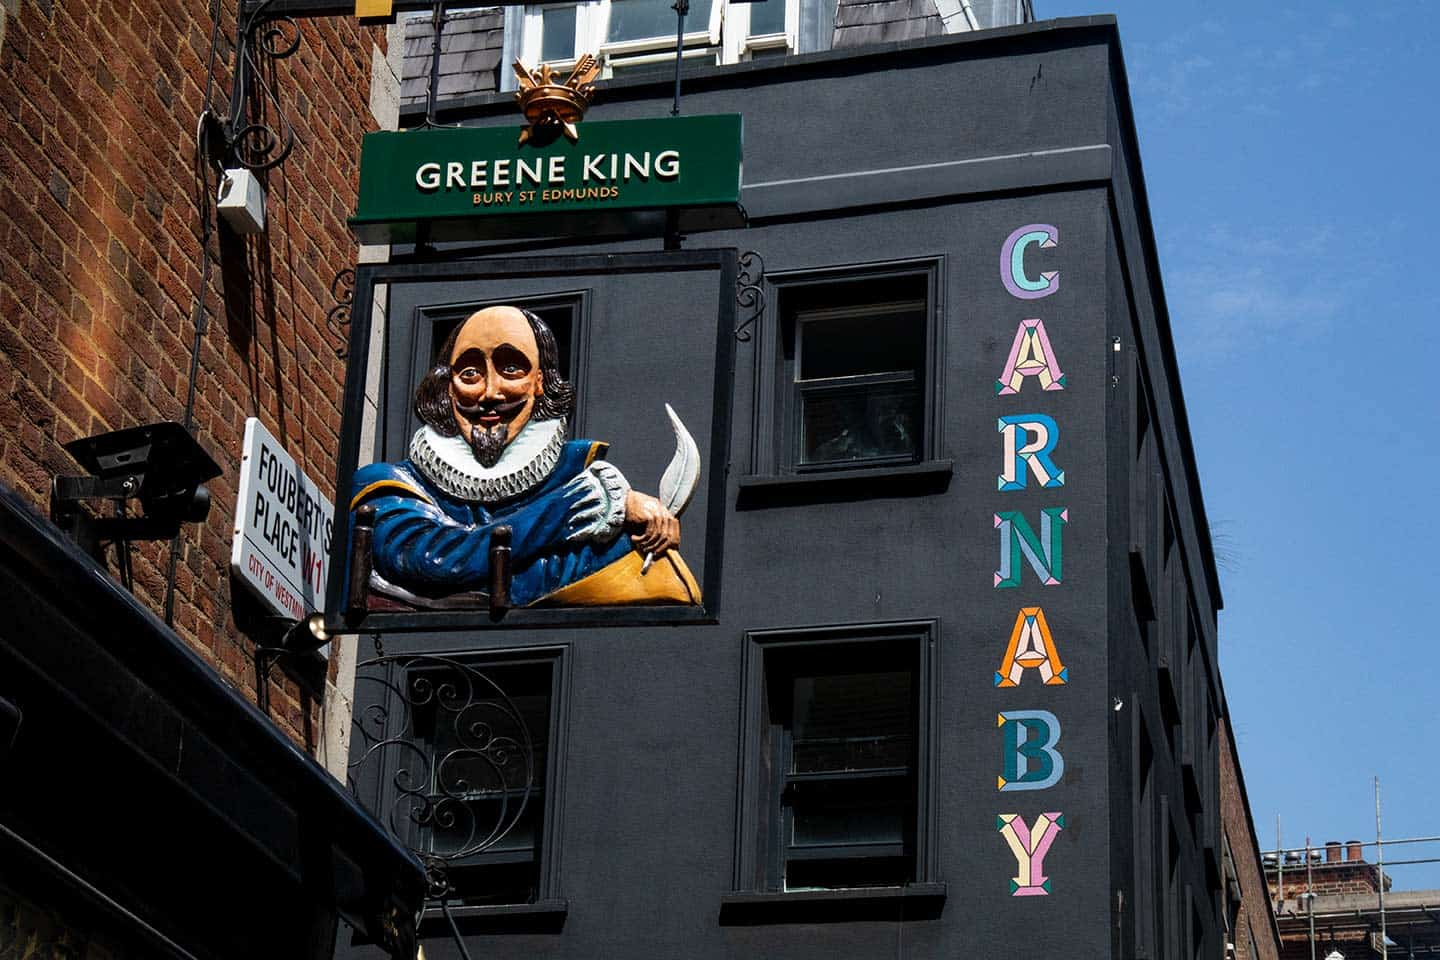 Image of Shakespeare's Head pub sign and Carnaby Street sign, London